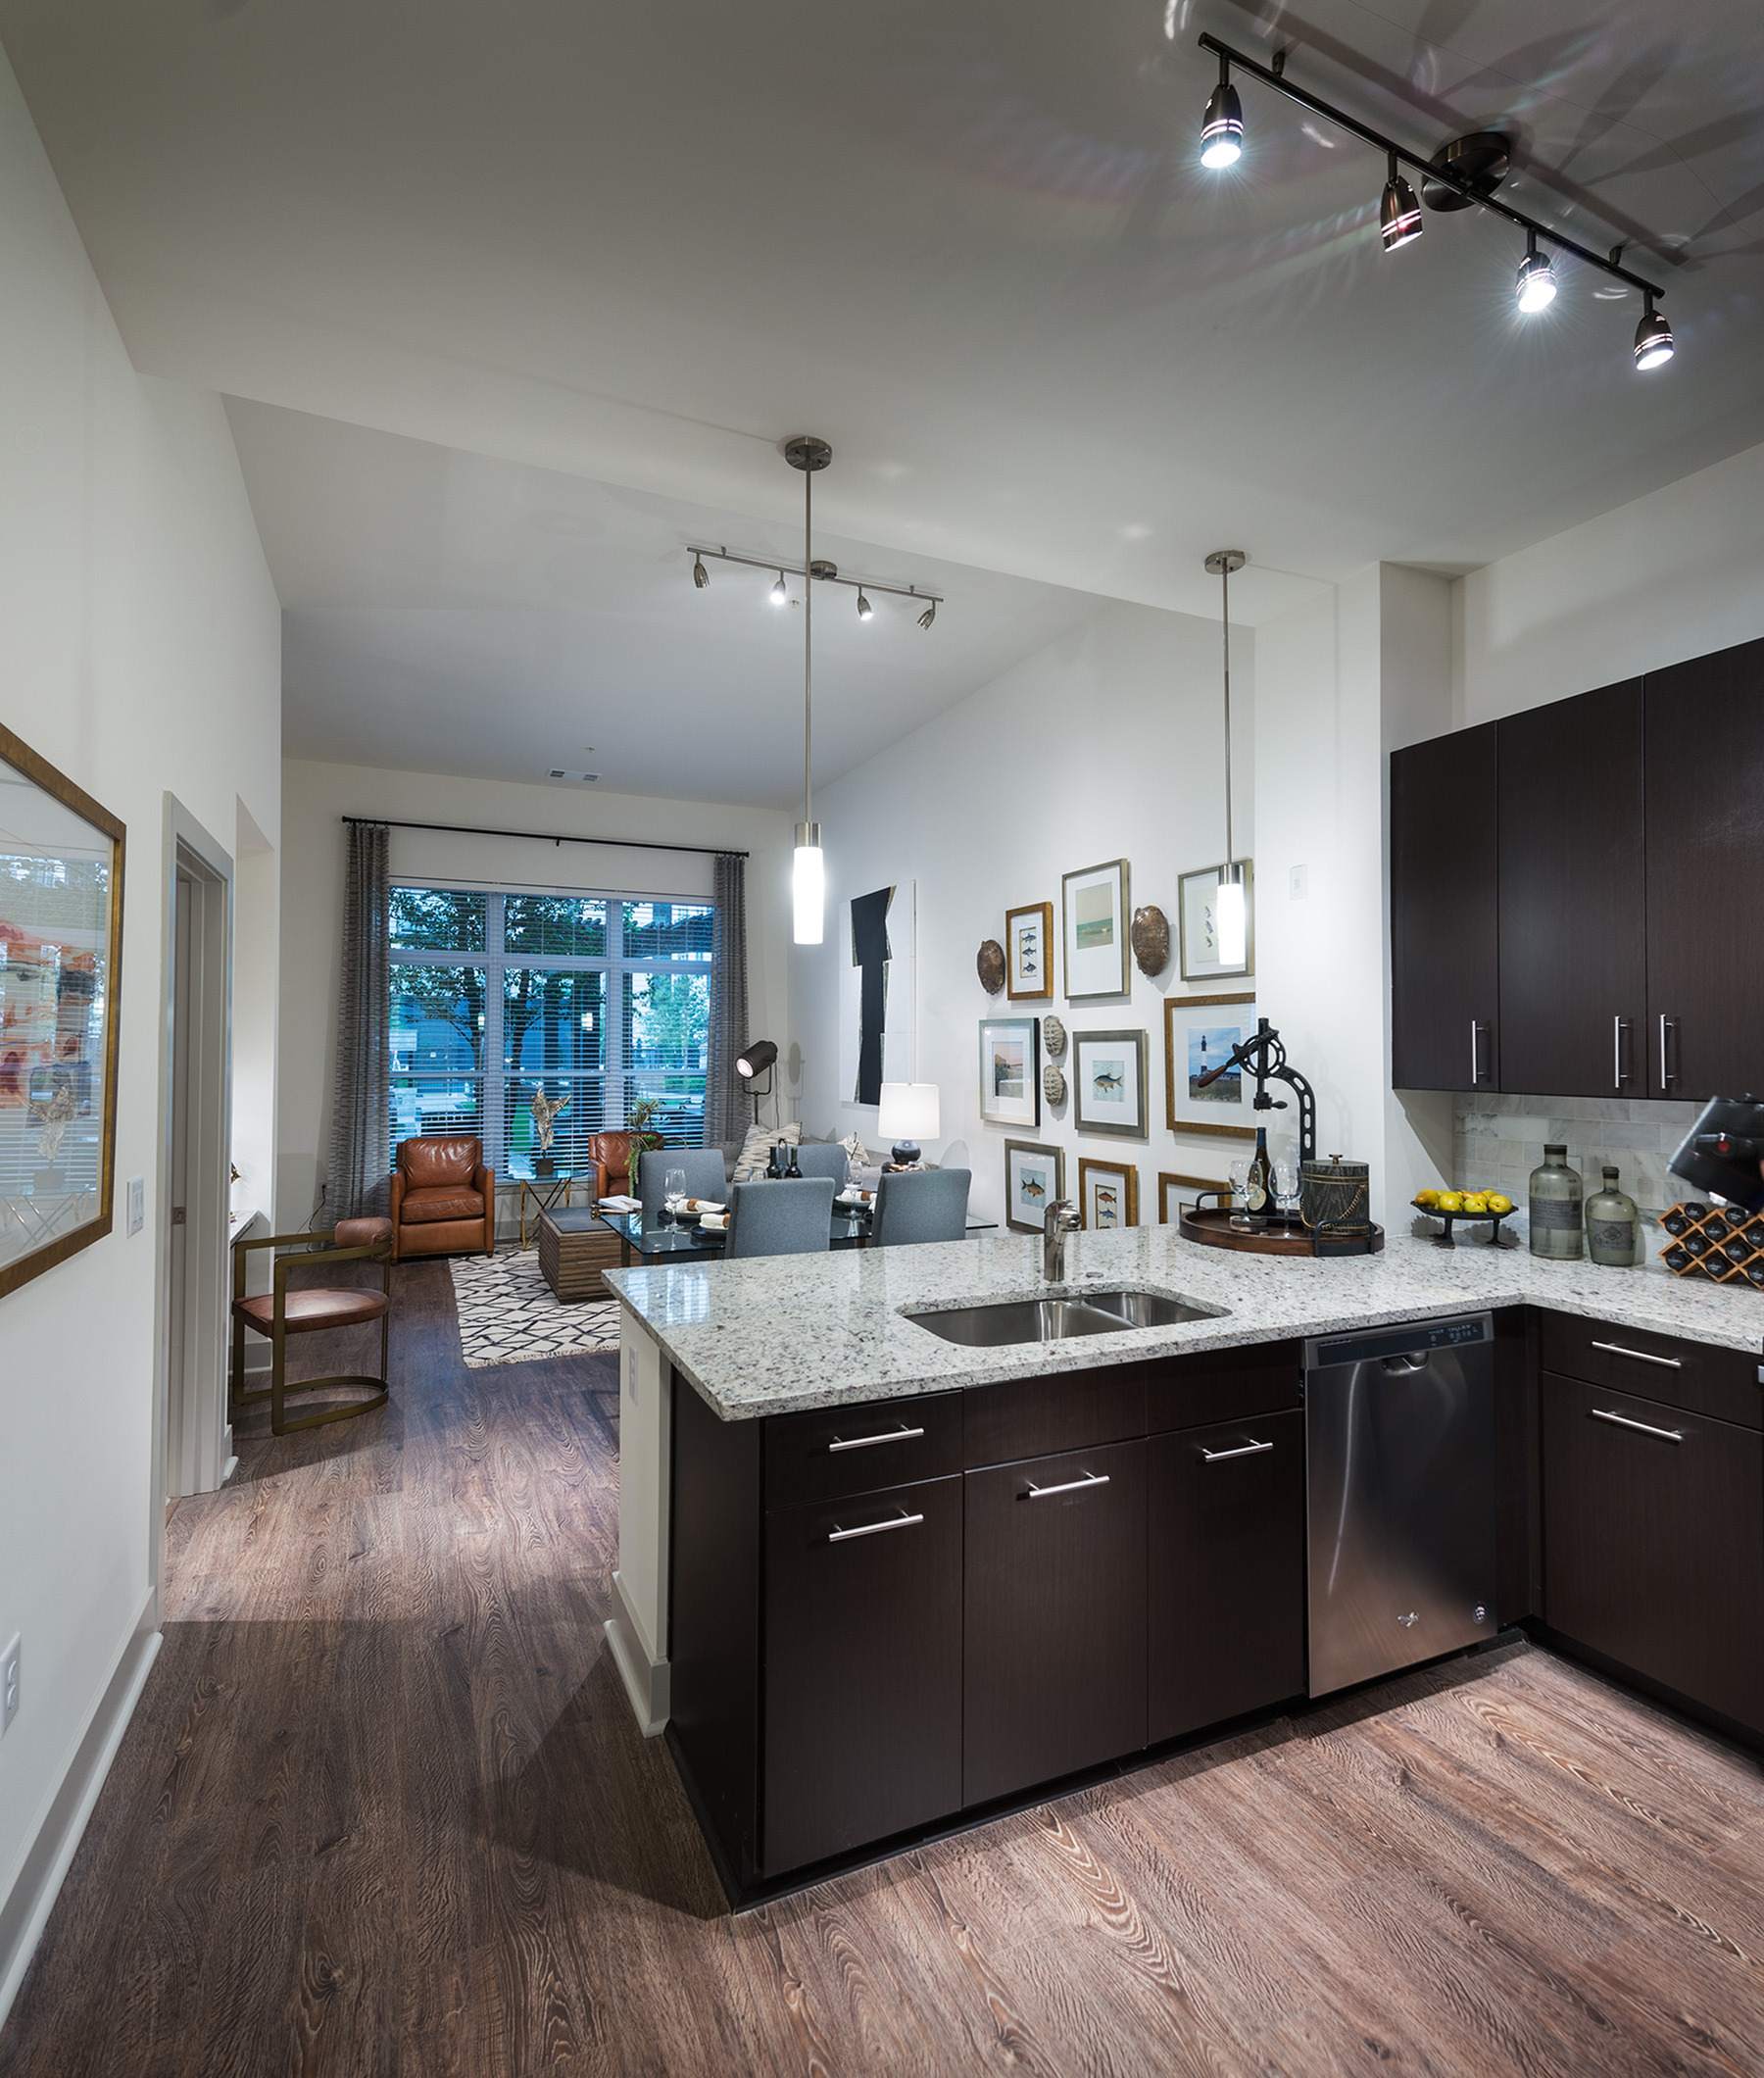 Image of Designer custom cabinetry and spacious kitchen islands* for Hanover Cross Street